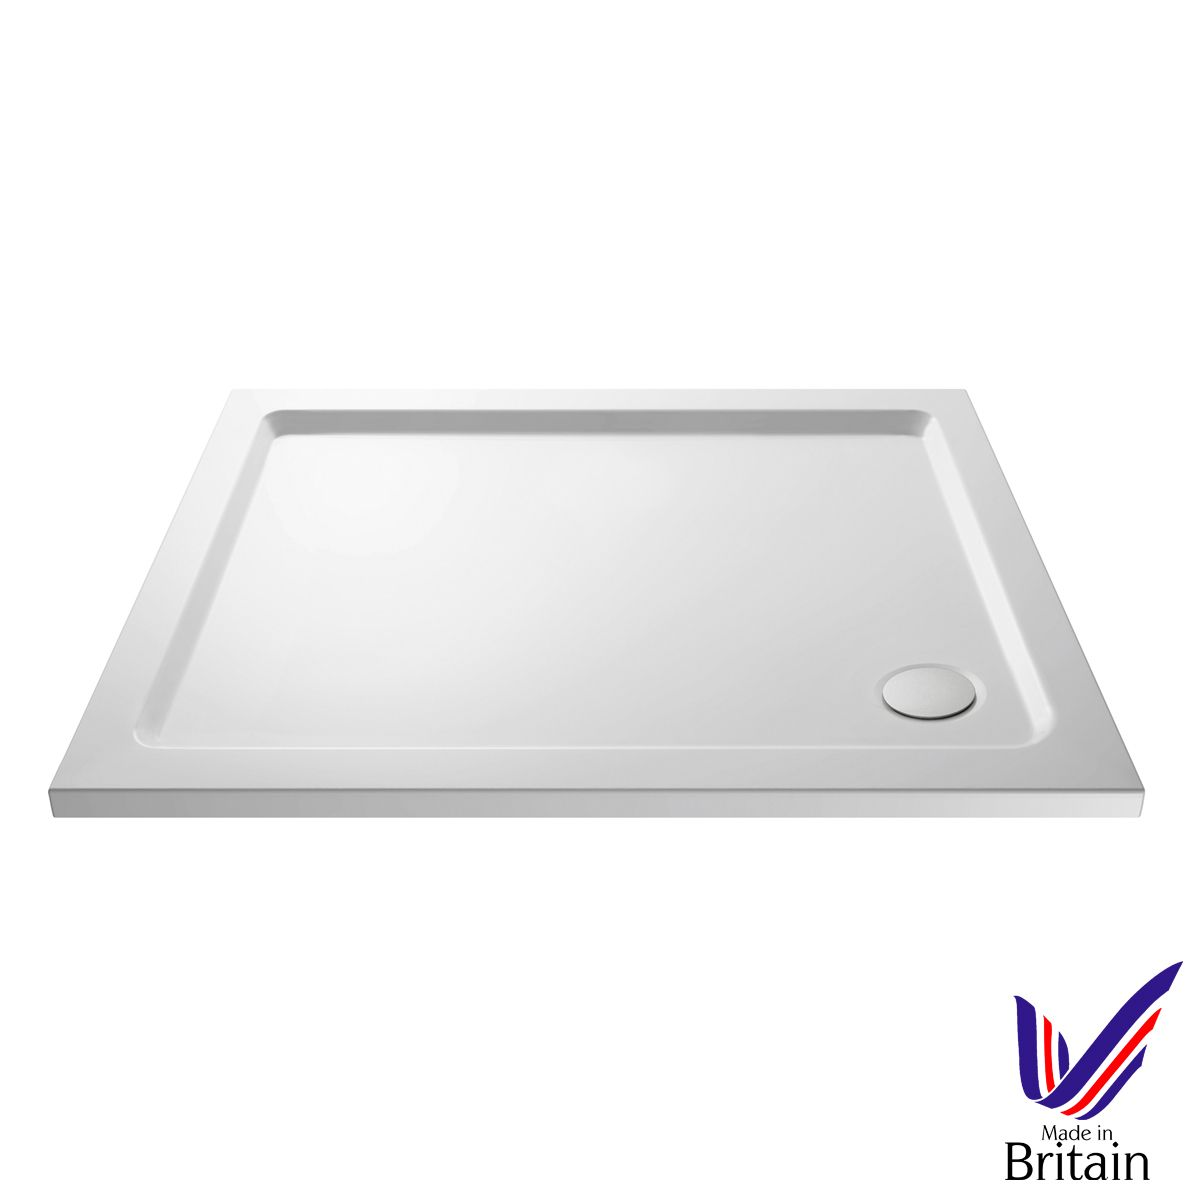 1100 x 760 Shower Tray Rectangular Low Profile by Pearlstone